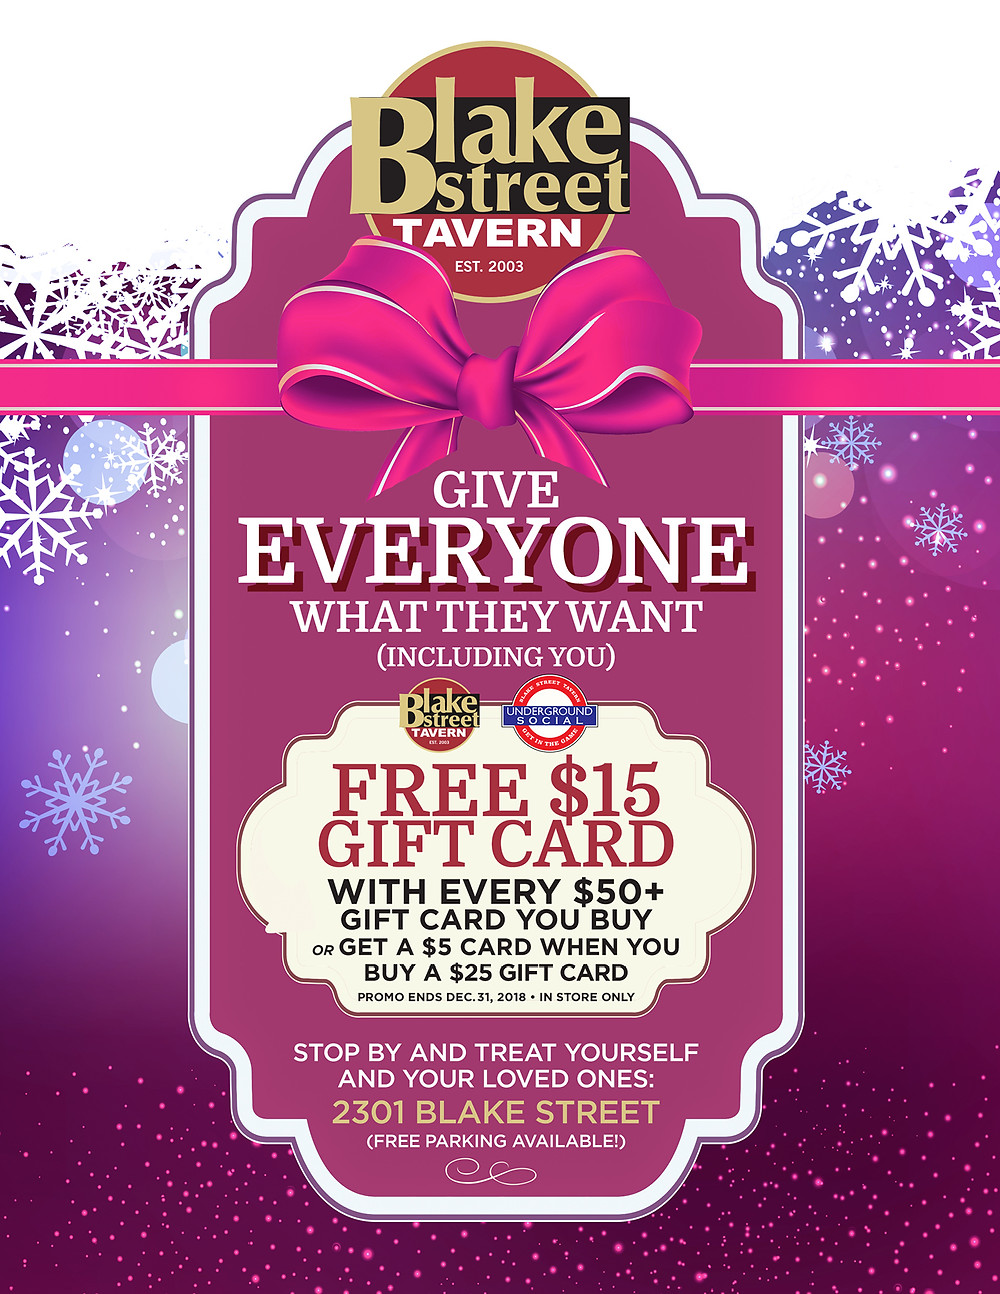 Denver Restaurant Deal on Gift Cards